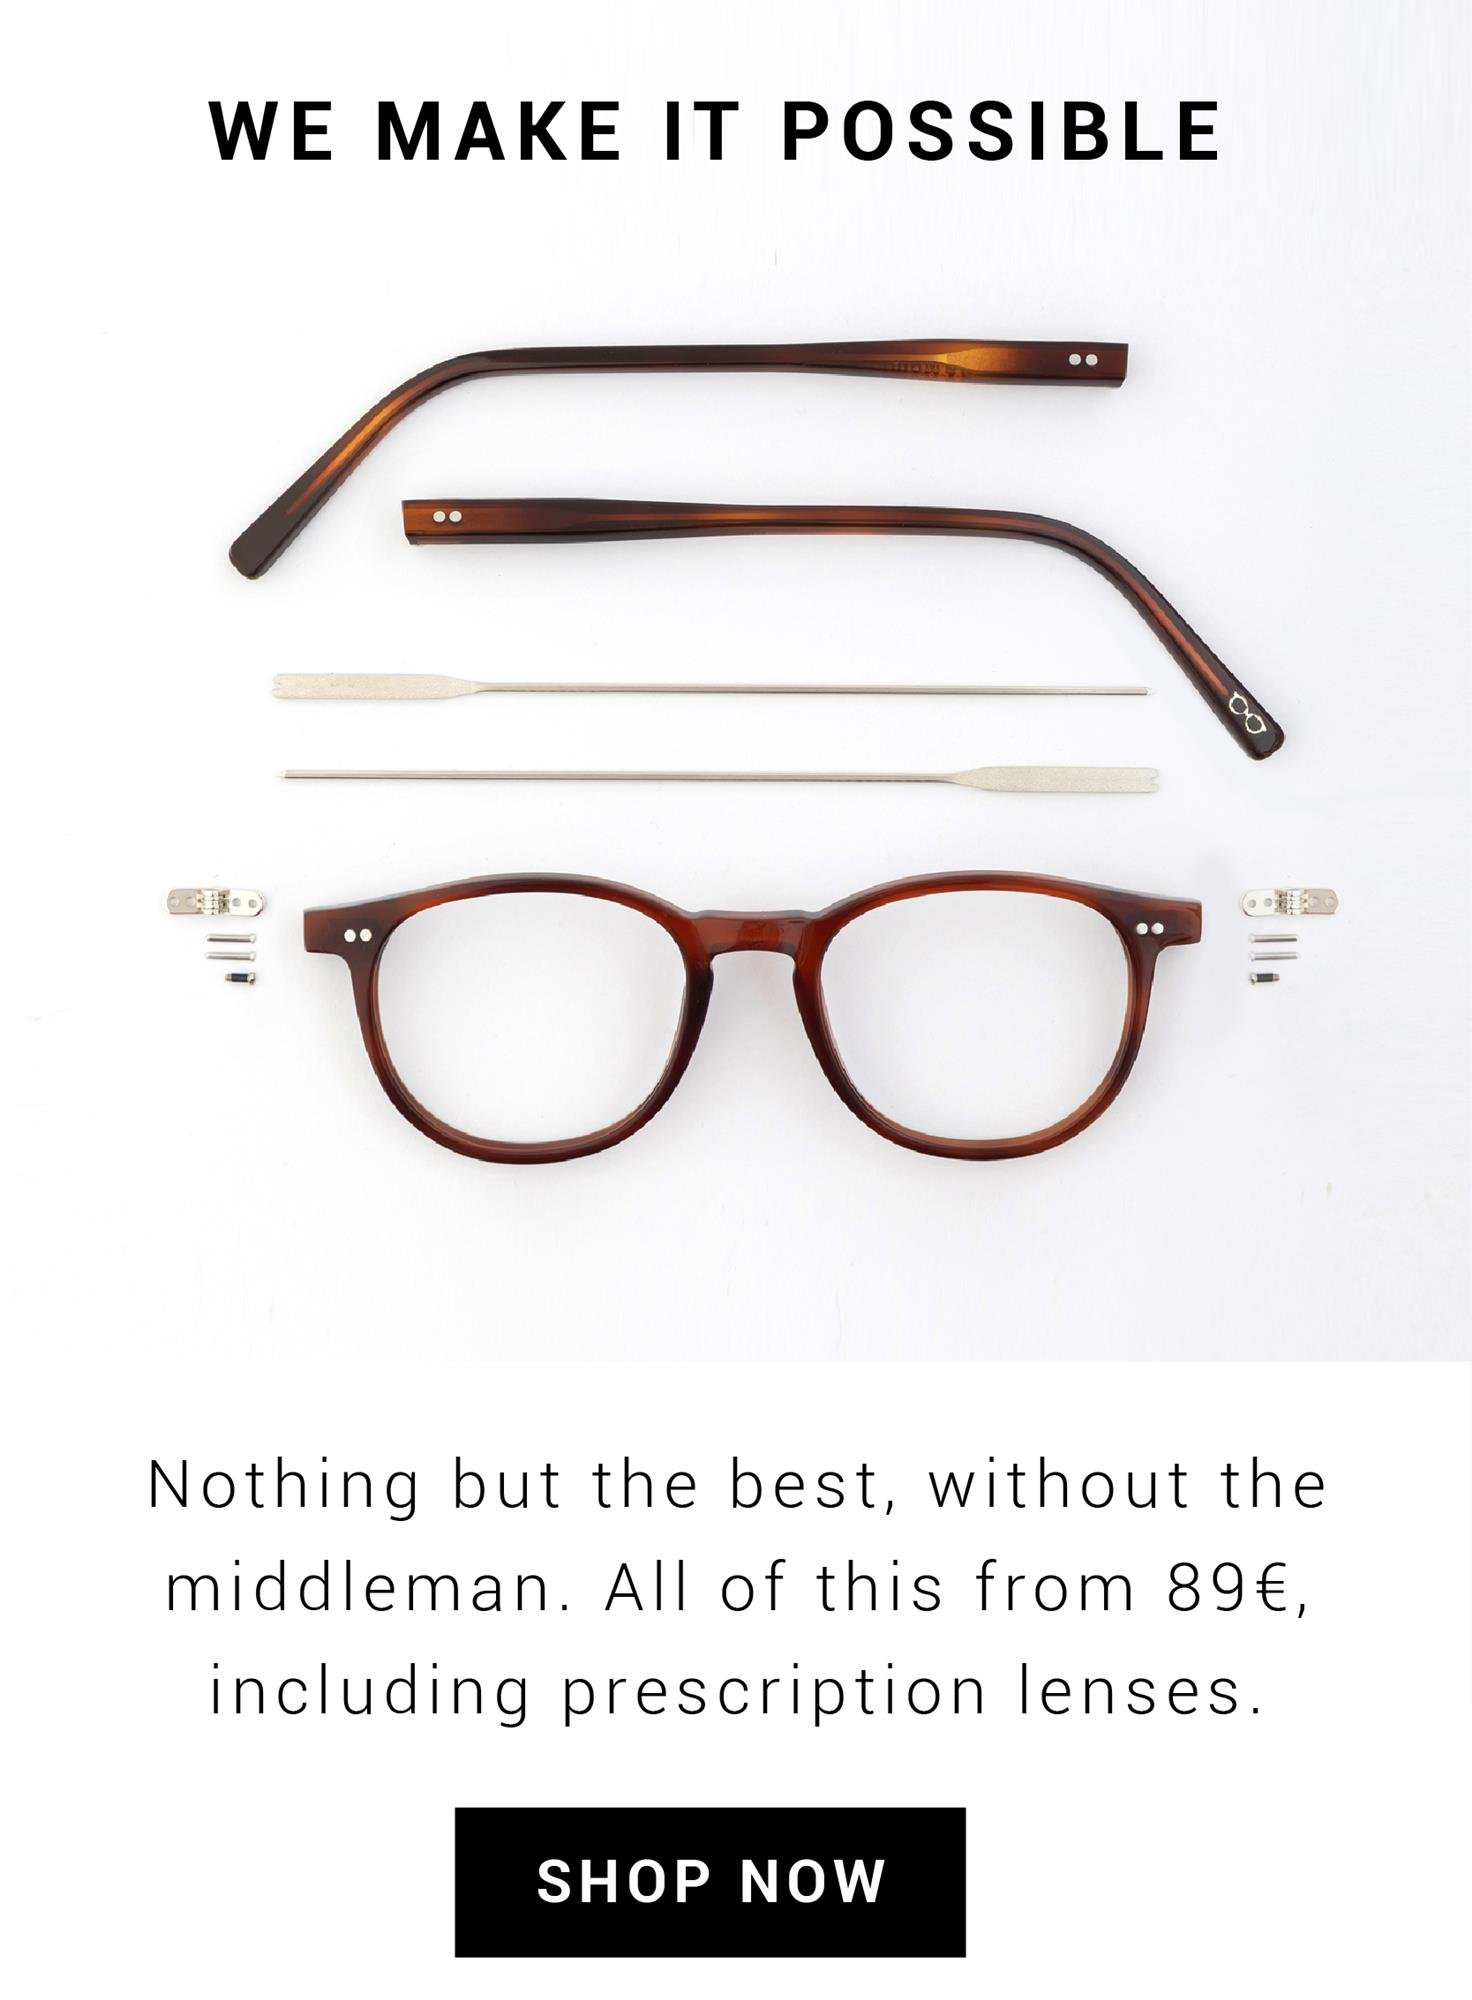 Quality handmade glasses